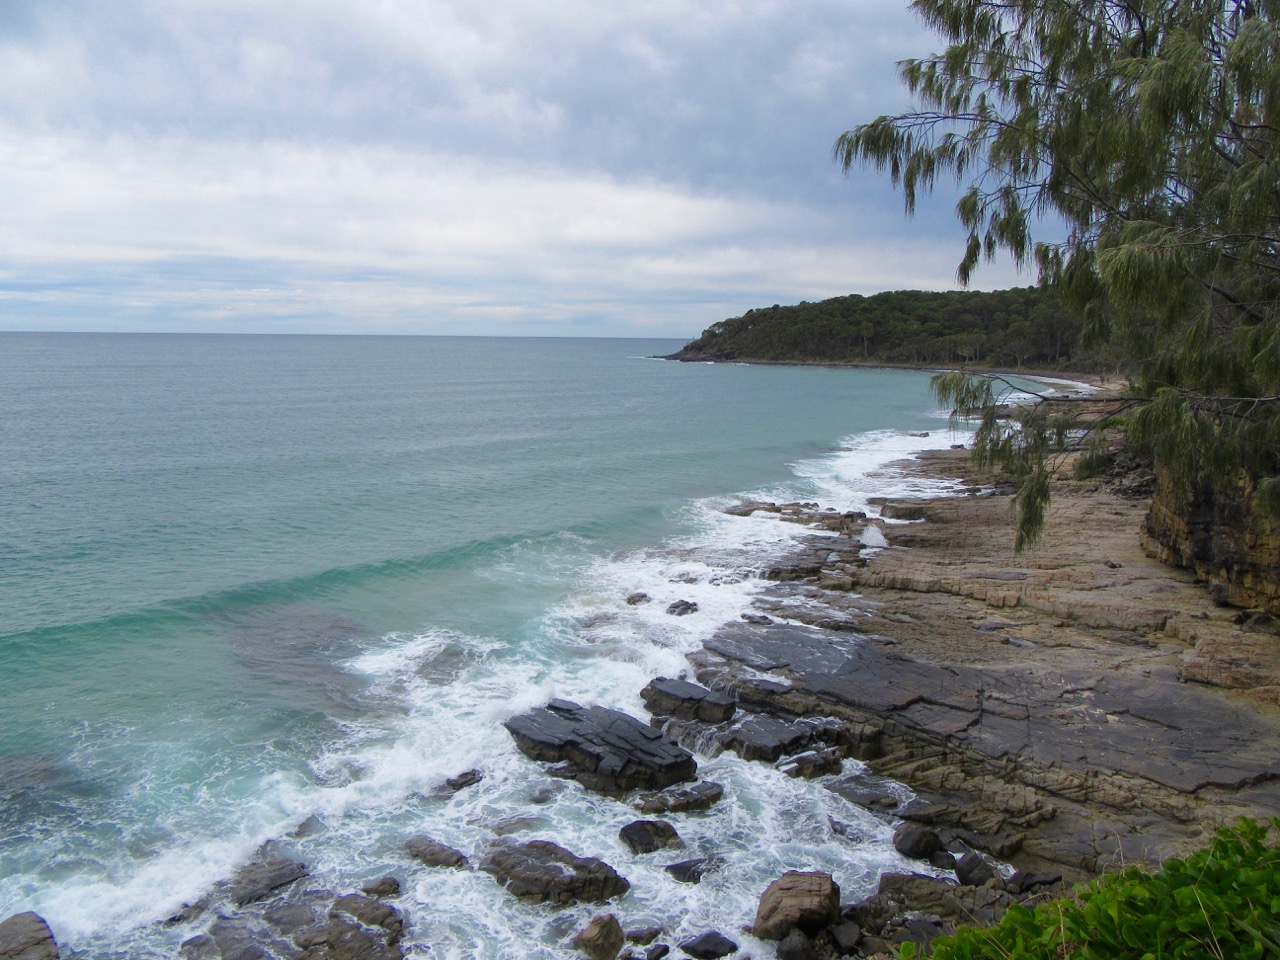 A cloudy but beautiful day at Noosa National Park.